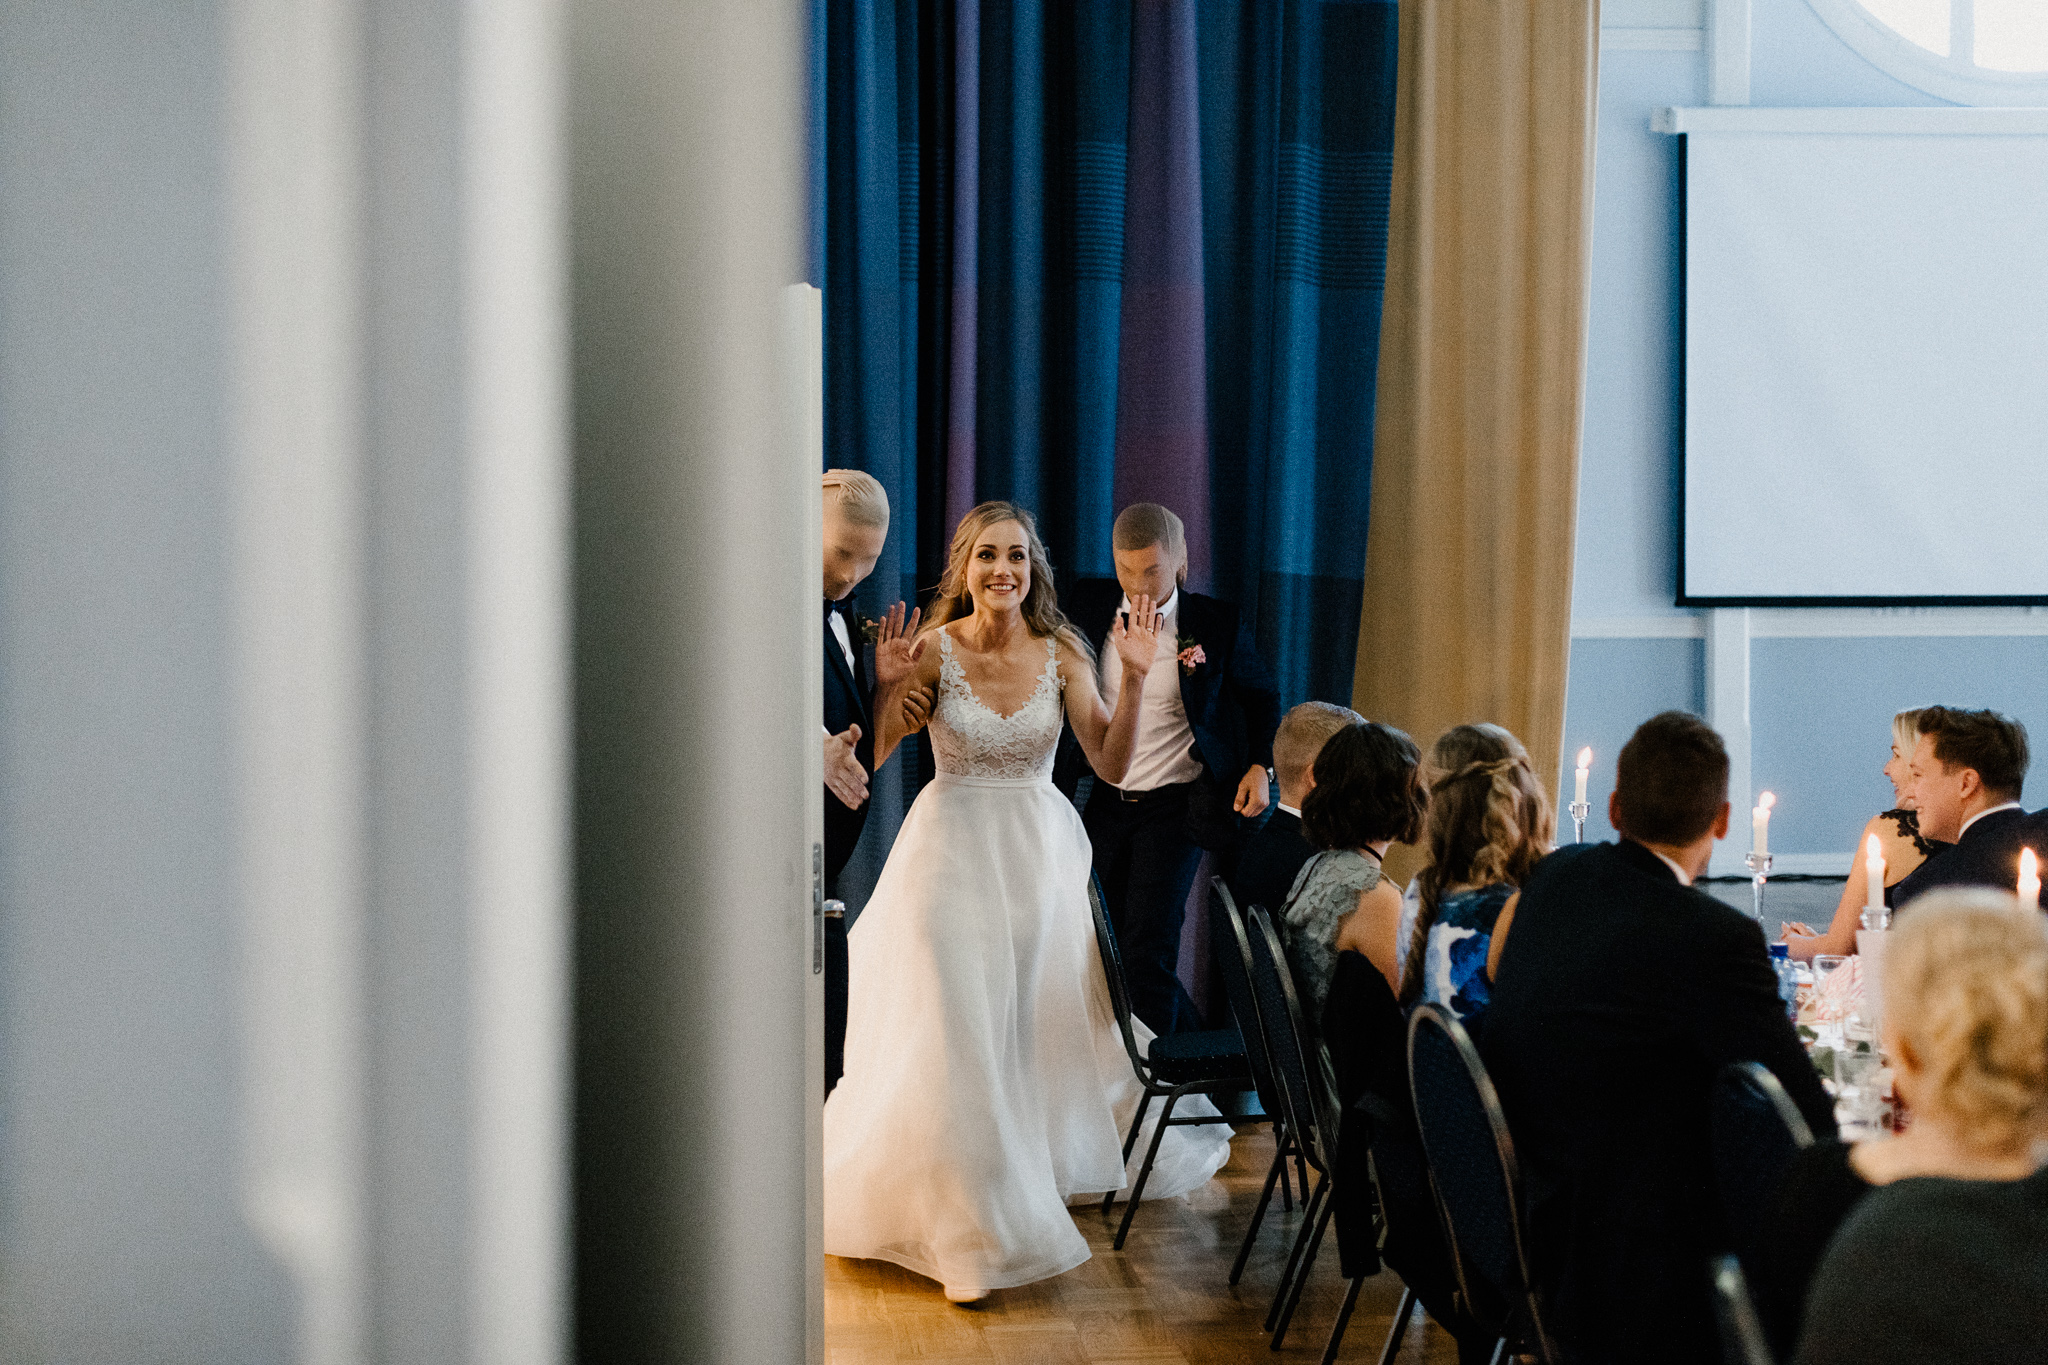 Johanna + Mikko - Tampere - Photo by Patrick Karkkolainen Wedding Photographer-118.jpg